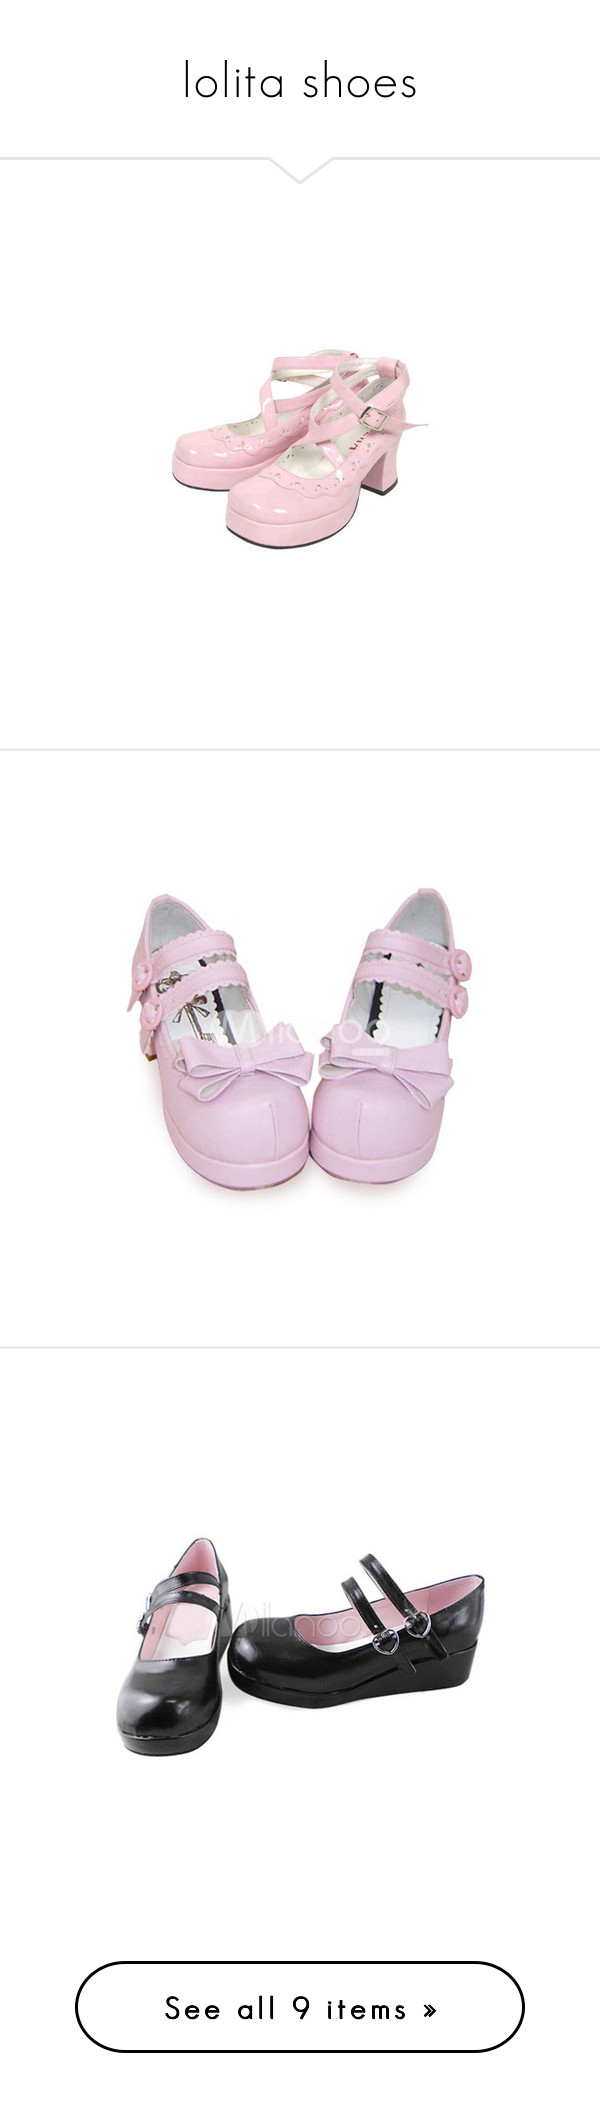 """""""lolita shoes"""" by cpfandomlover ❤ liked on Polyvore featuring shoes, lolita shoes, lolita, heels, pumps, pink bow pumps, mid heel platform shoes, pink bow shoes, mid heel shoes ve pink platform shoes"""